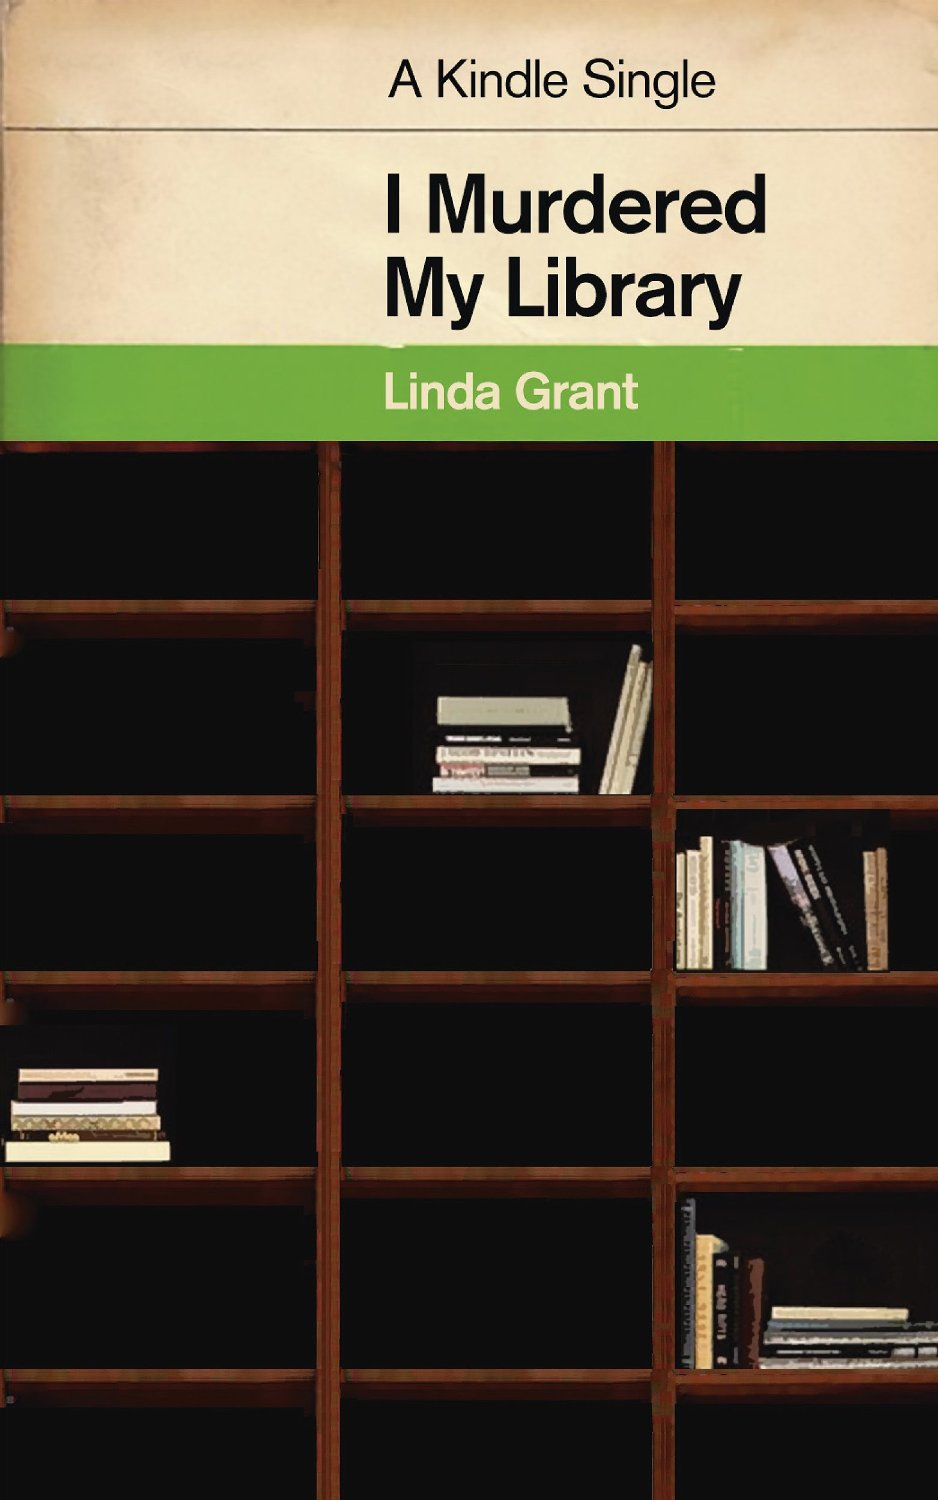 I Murdered My Library